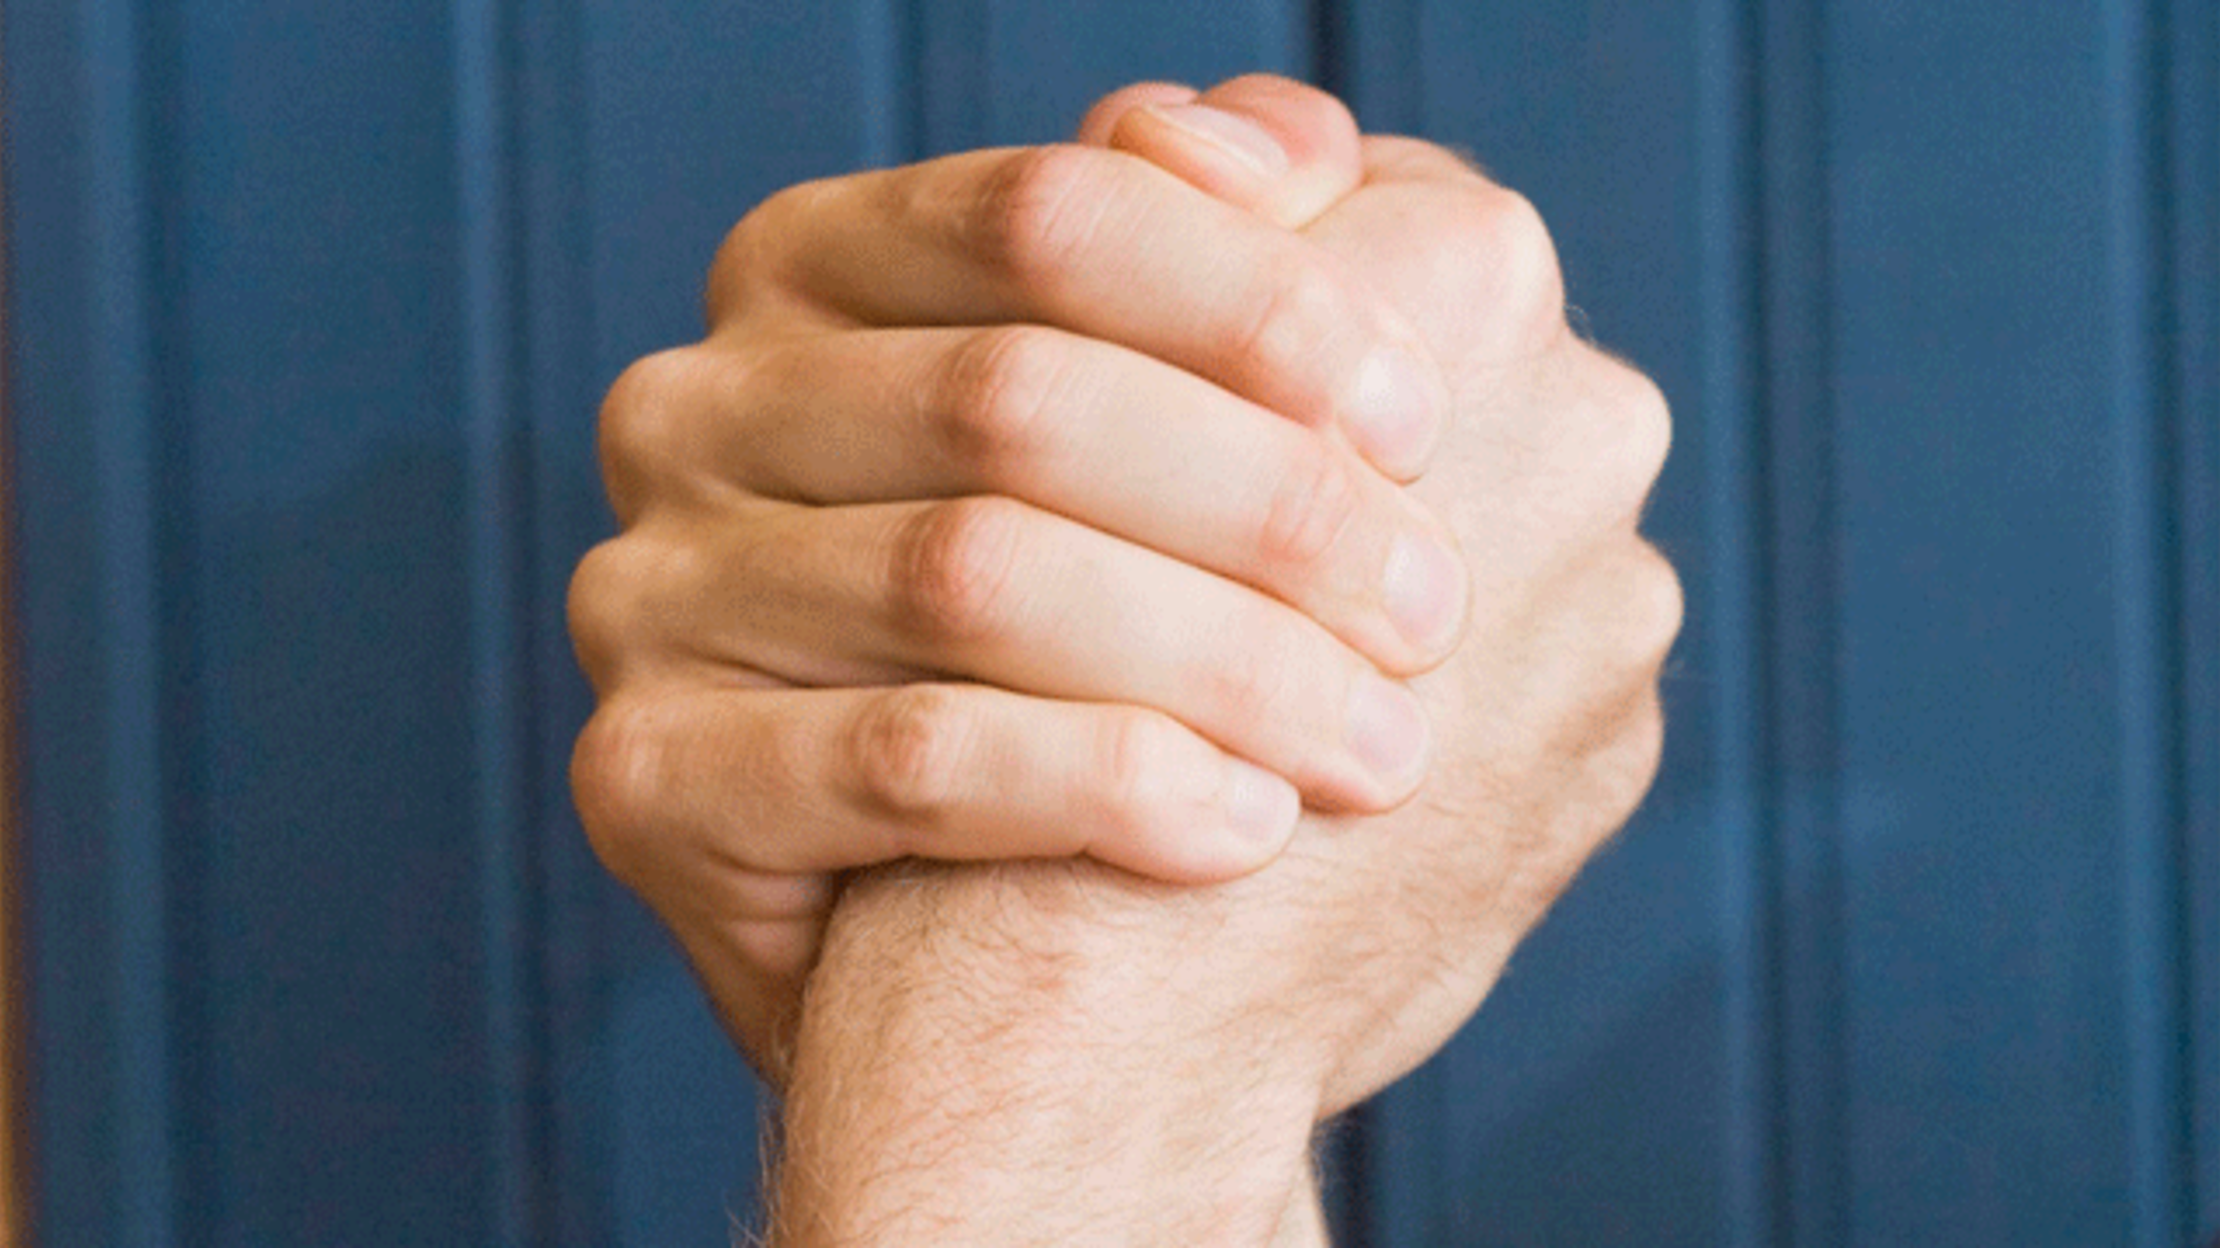 How To Dominate At Arm Wrestling Mental Floss